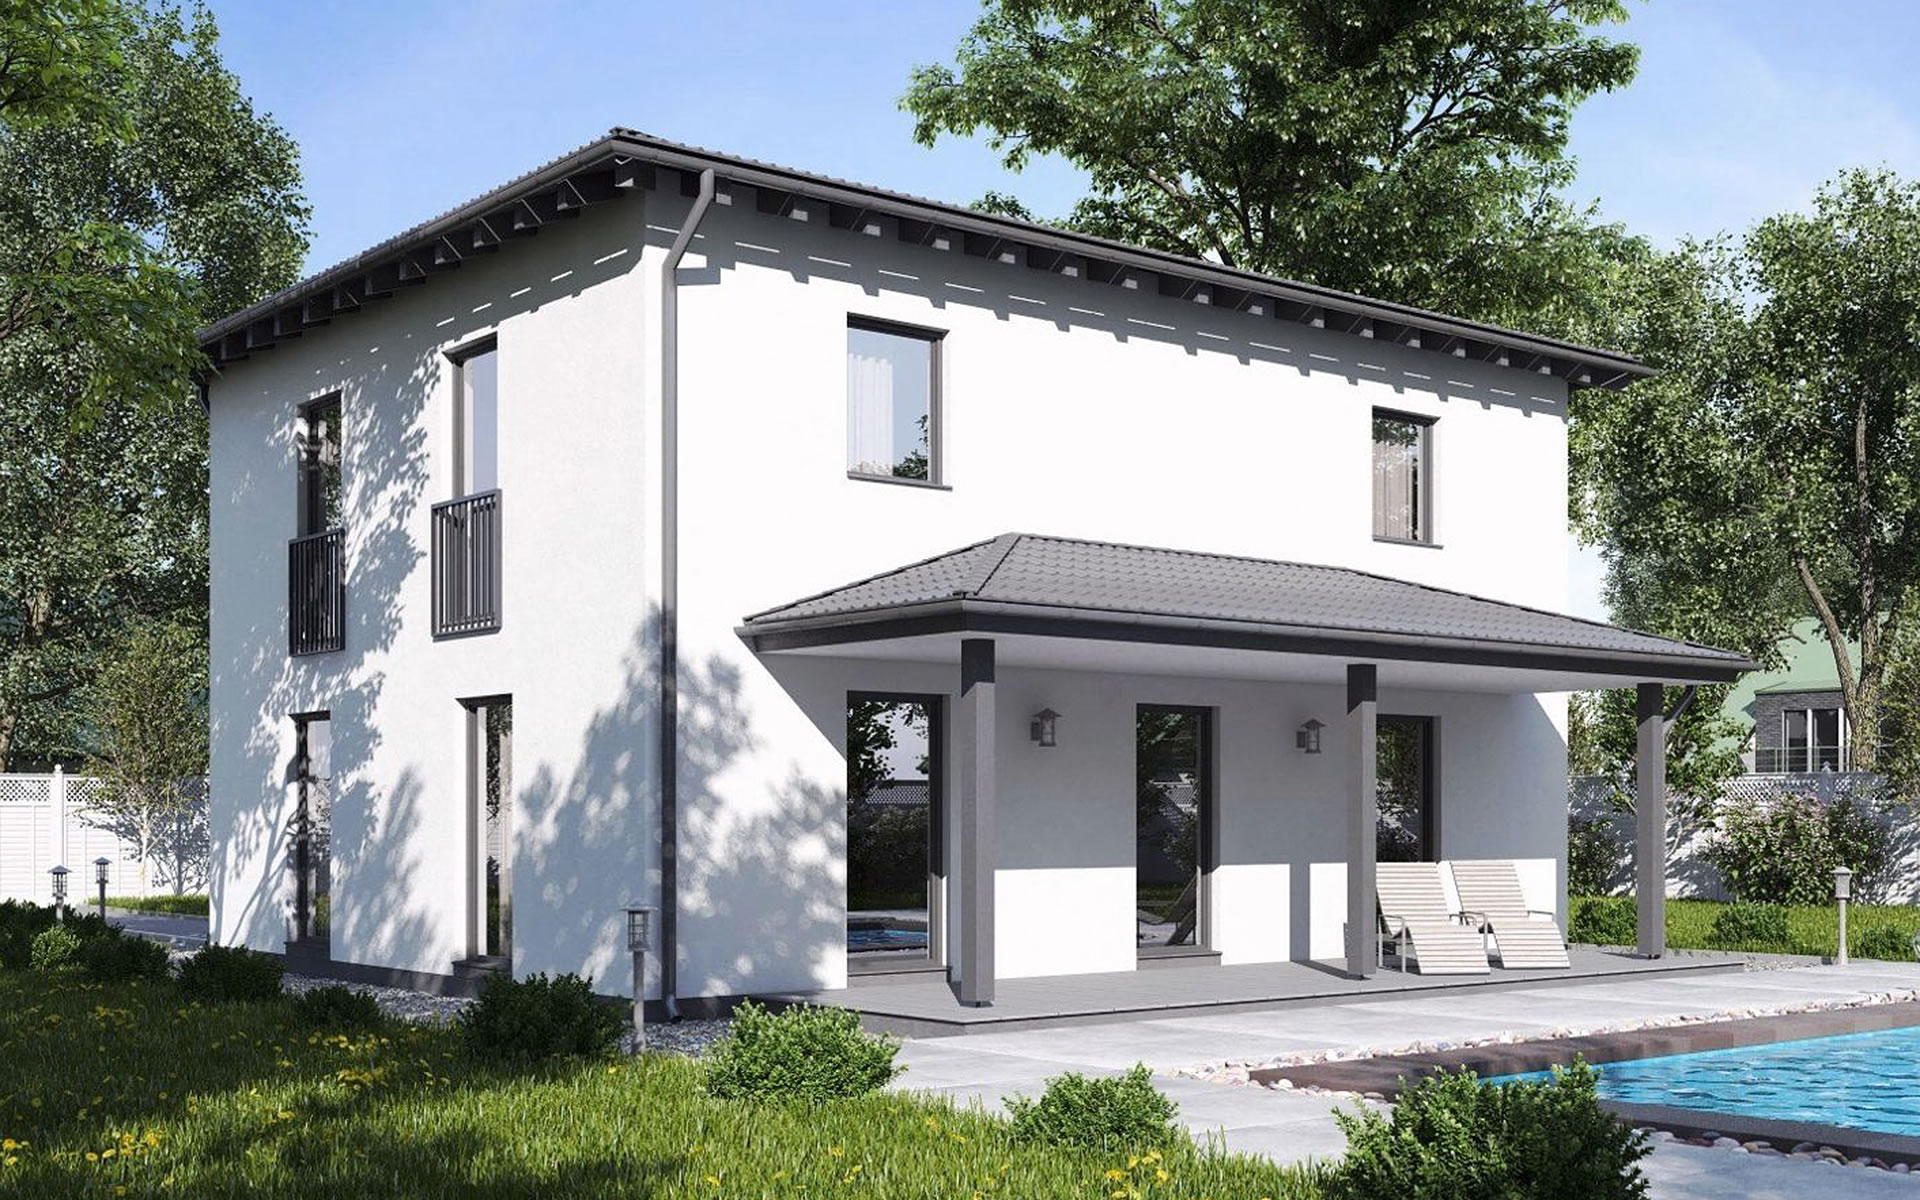 Einfamilienhaus BS 138 - B&S Selbstbausysteme GmbH & Co. KG